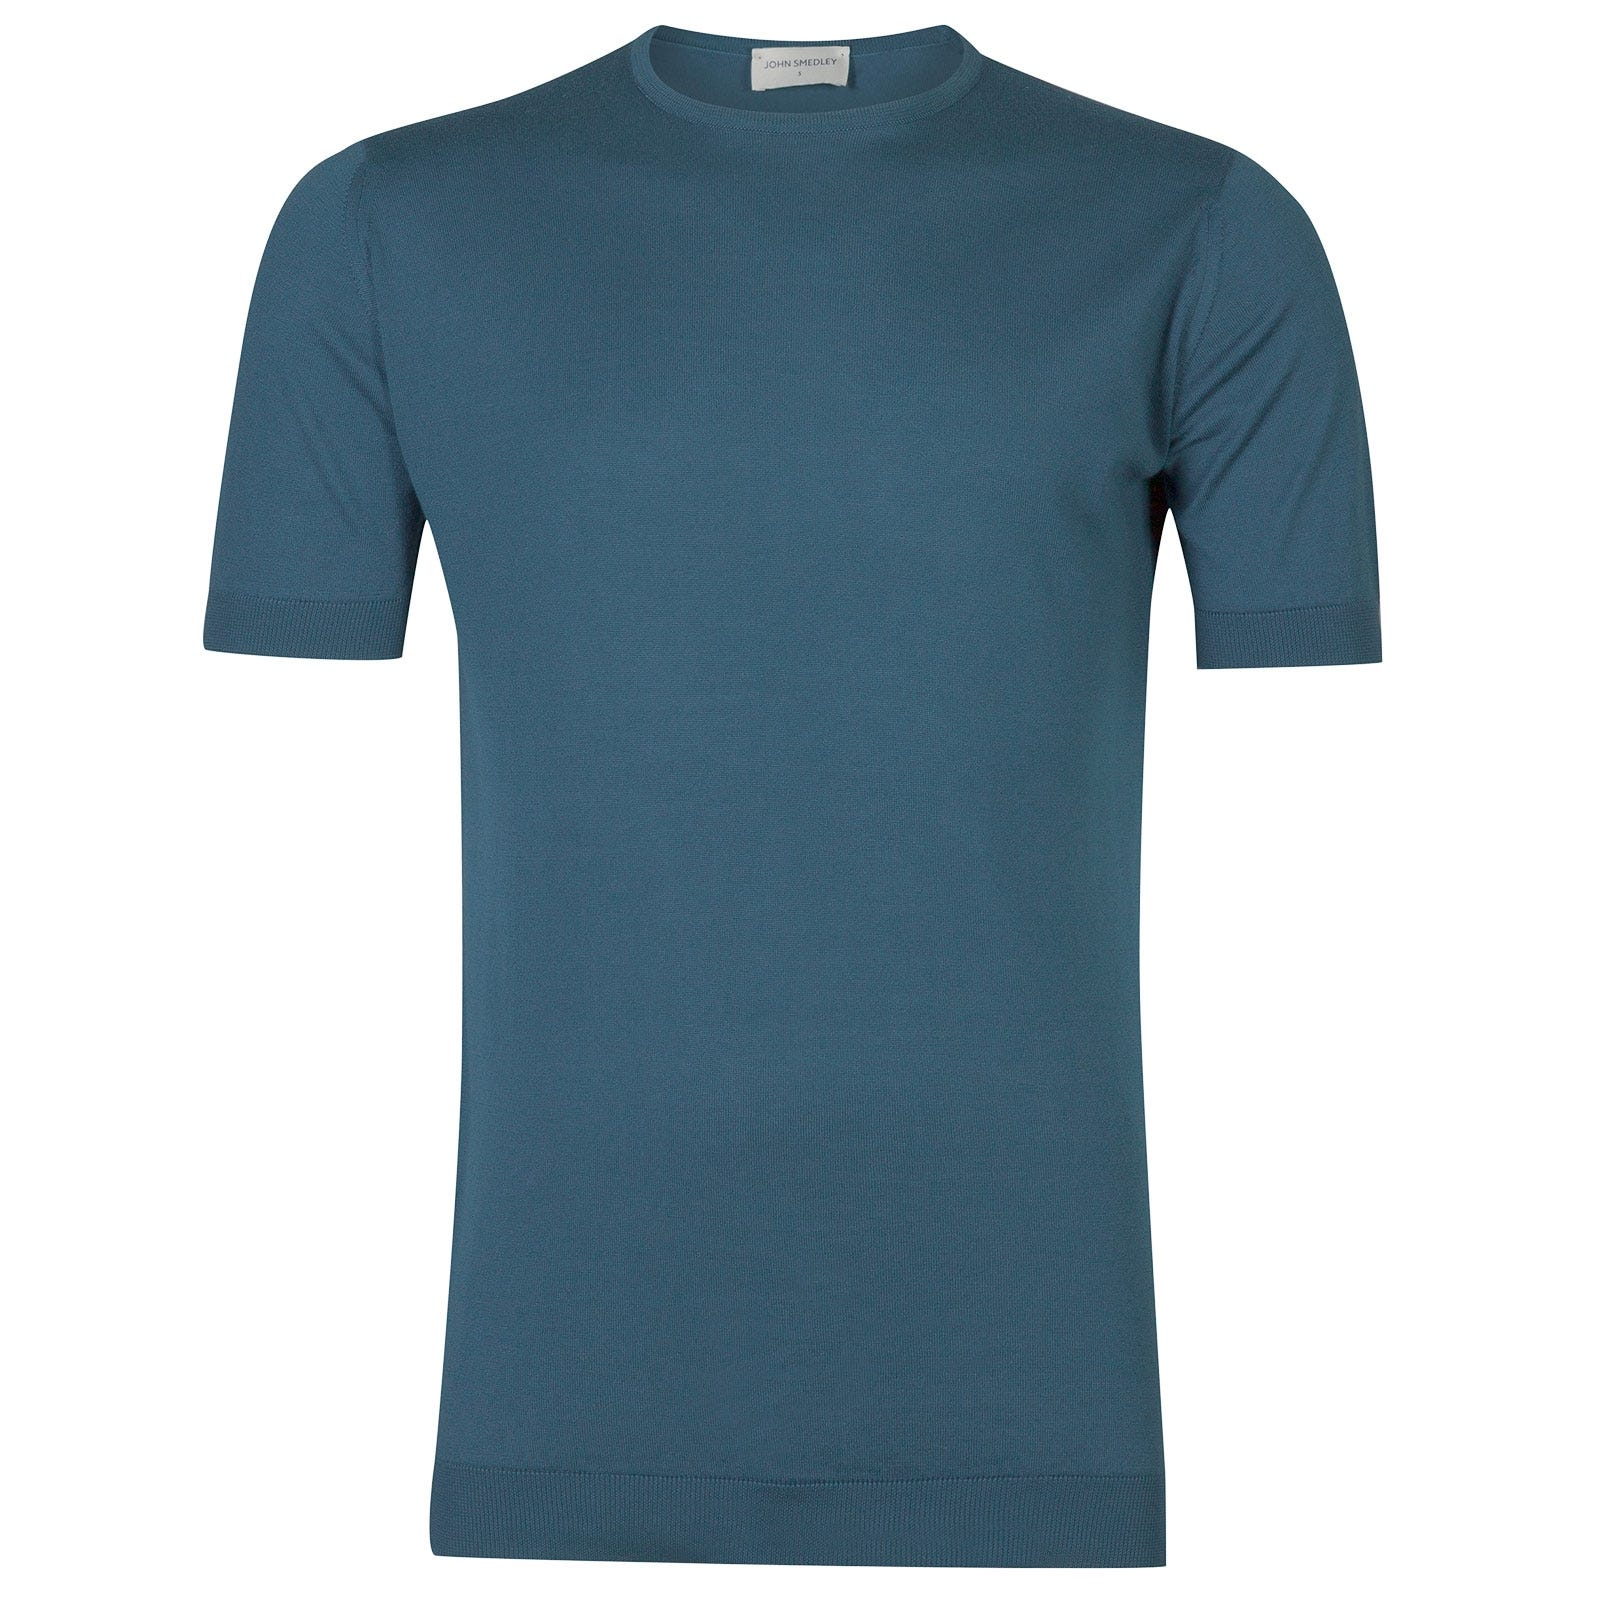 John Smedley Belden Sea Island Cotton T-shirt in Bias Blue-XXL